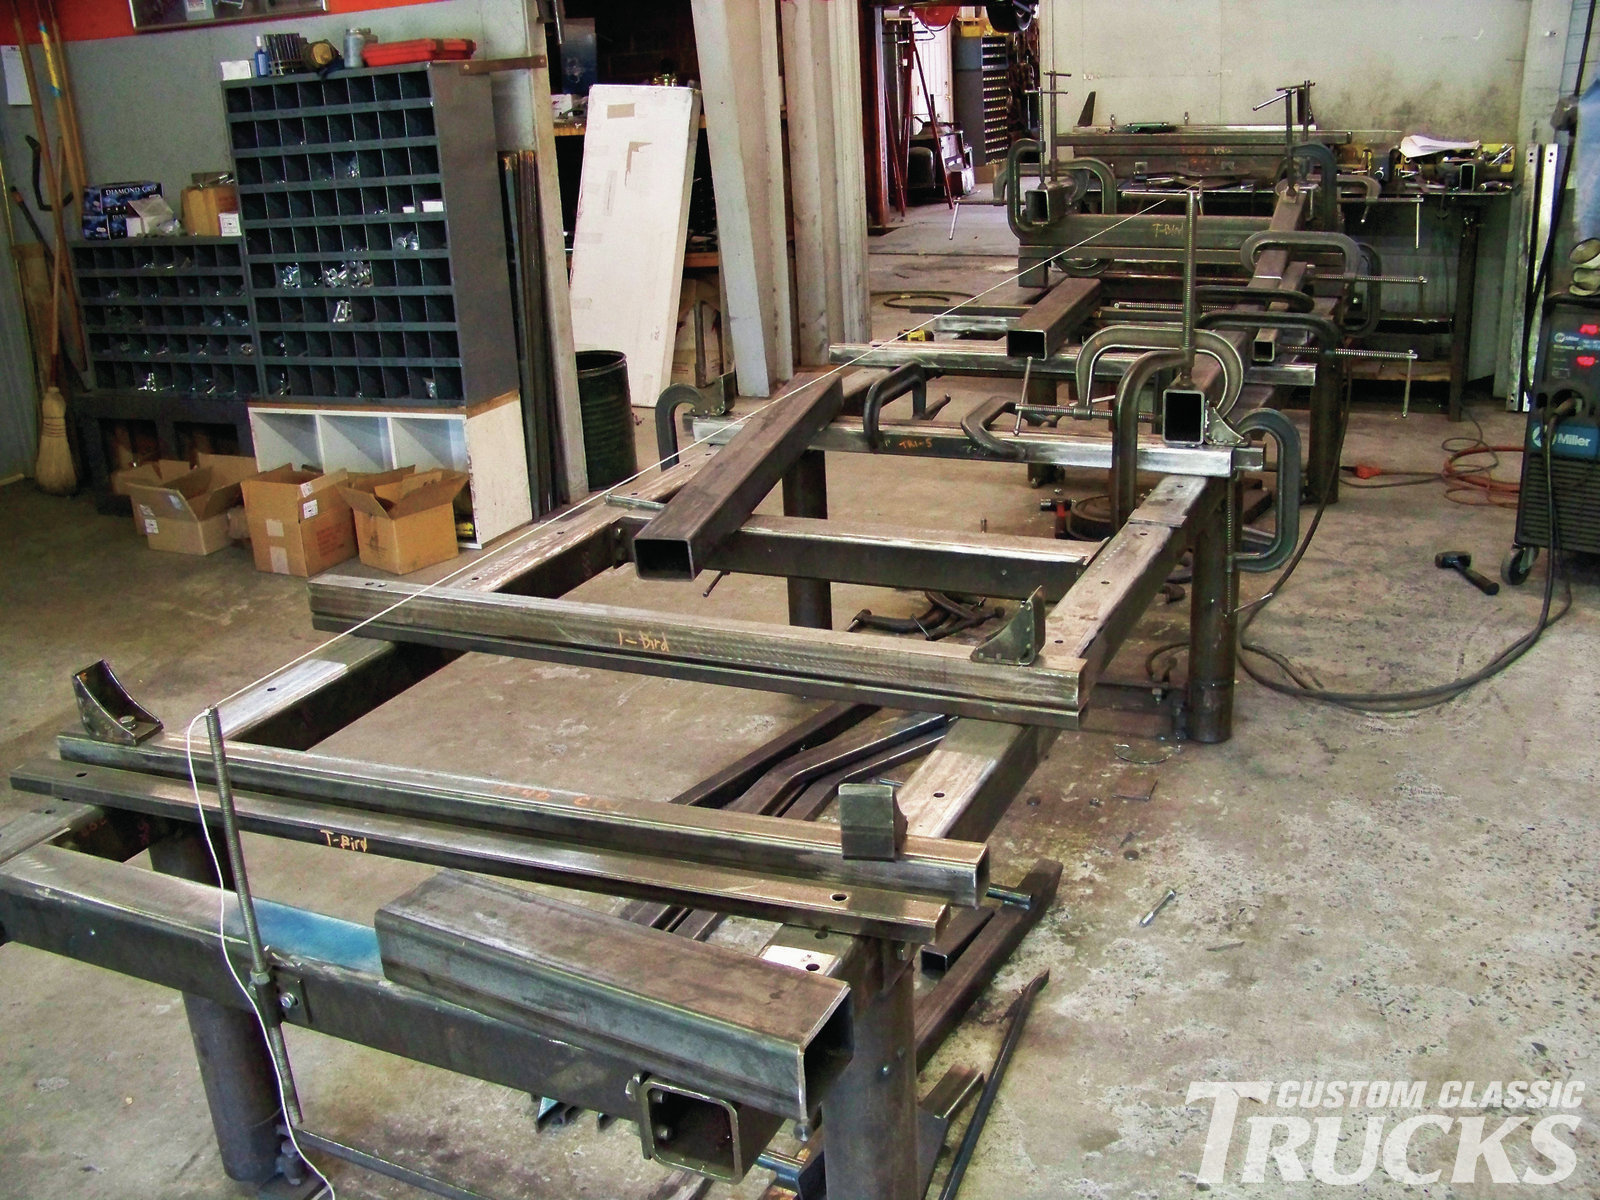 2. This jig is used for truck frame assembly. Specific stops are bolted in place to ensure proper alignment for welding.A center string line is used as a double check to be certain the frame remains square and true as welding takes place.